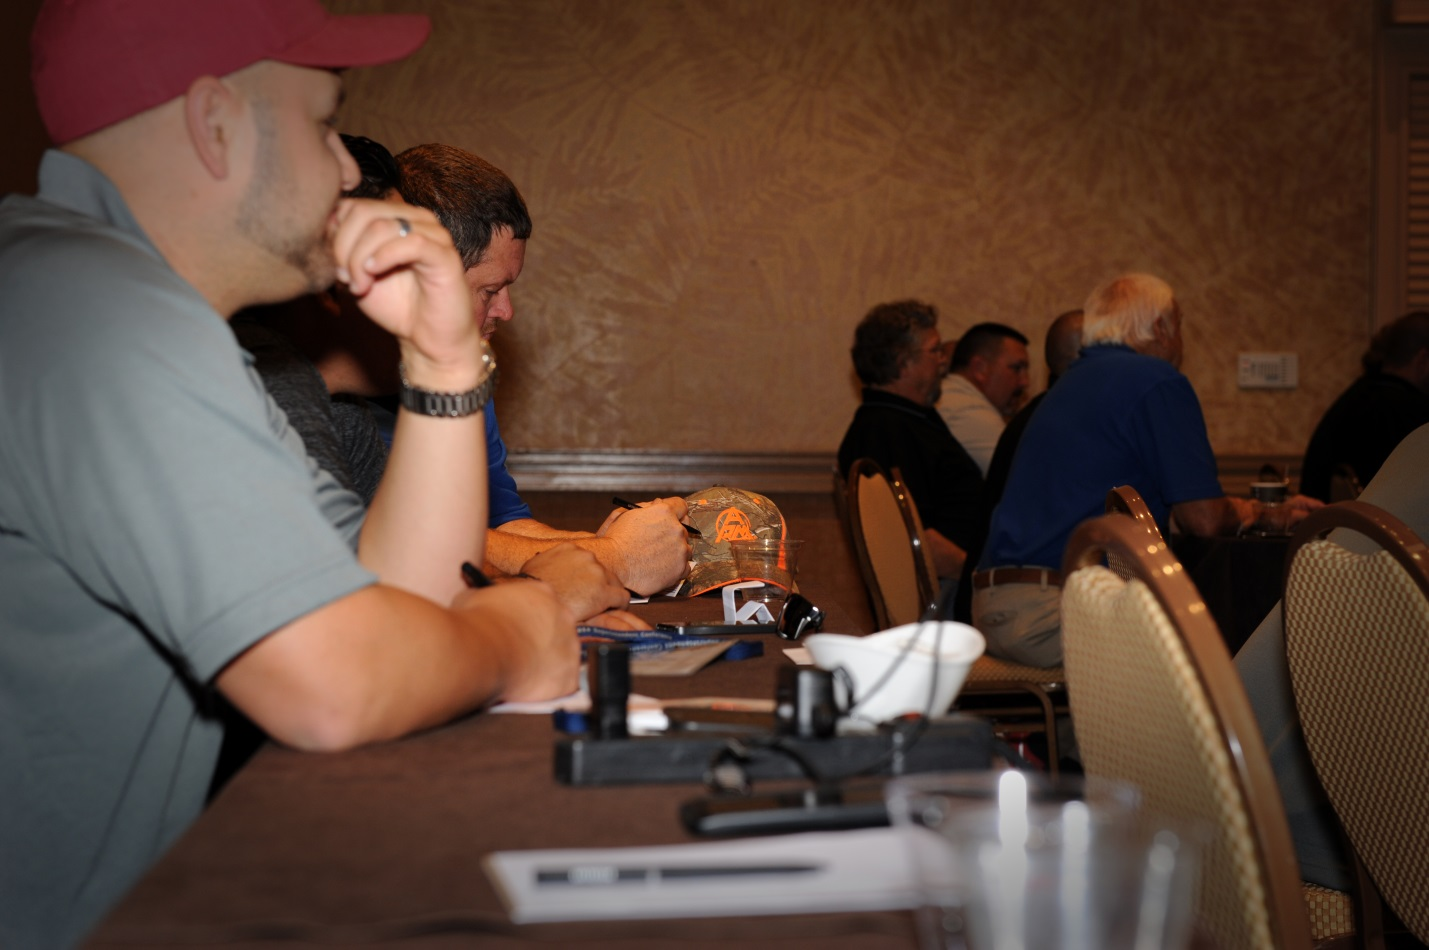 Our teams spent one day with their regions to discuss successes and challenges from previous jobs to coordinate a game plan to ensure optimal execution during the upcoming outages.